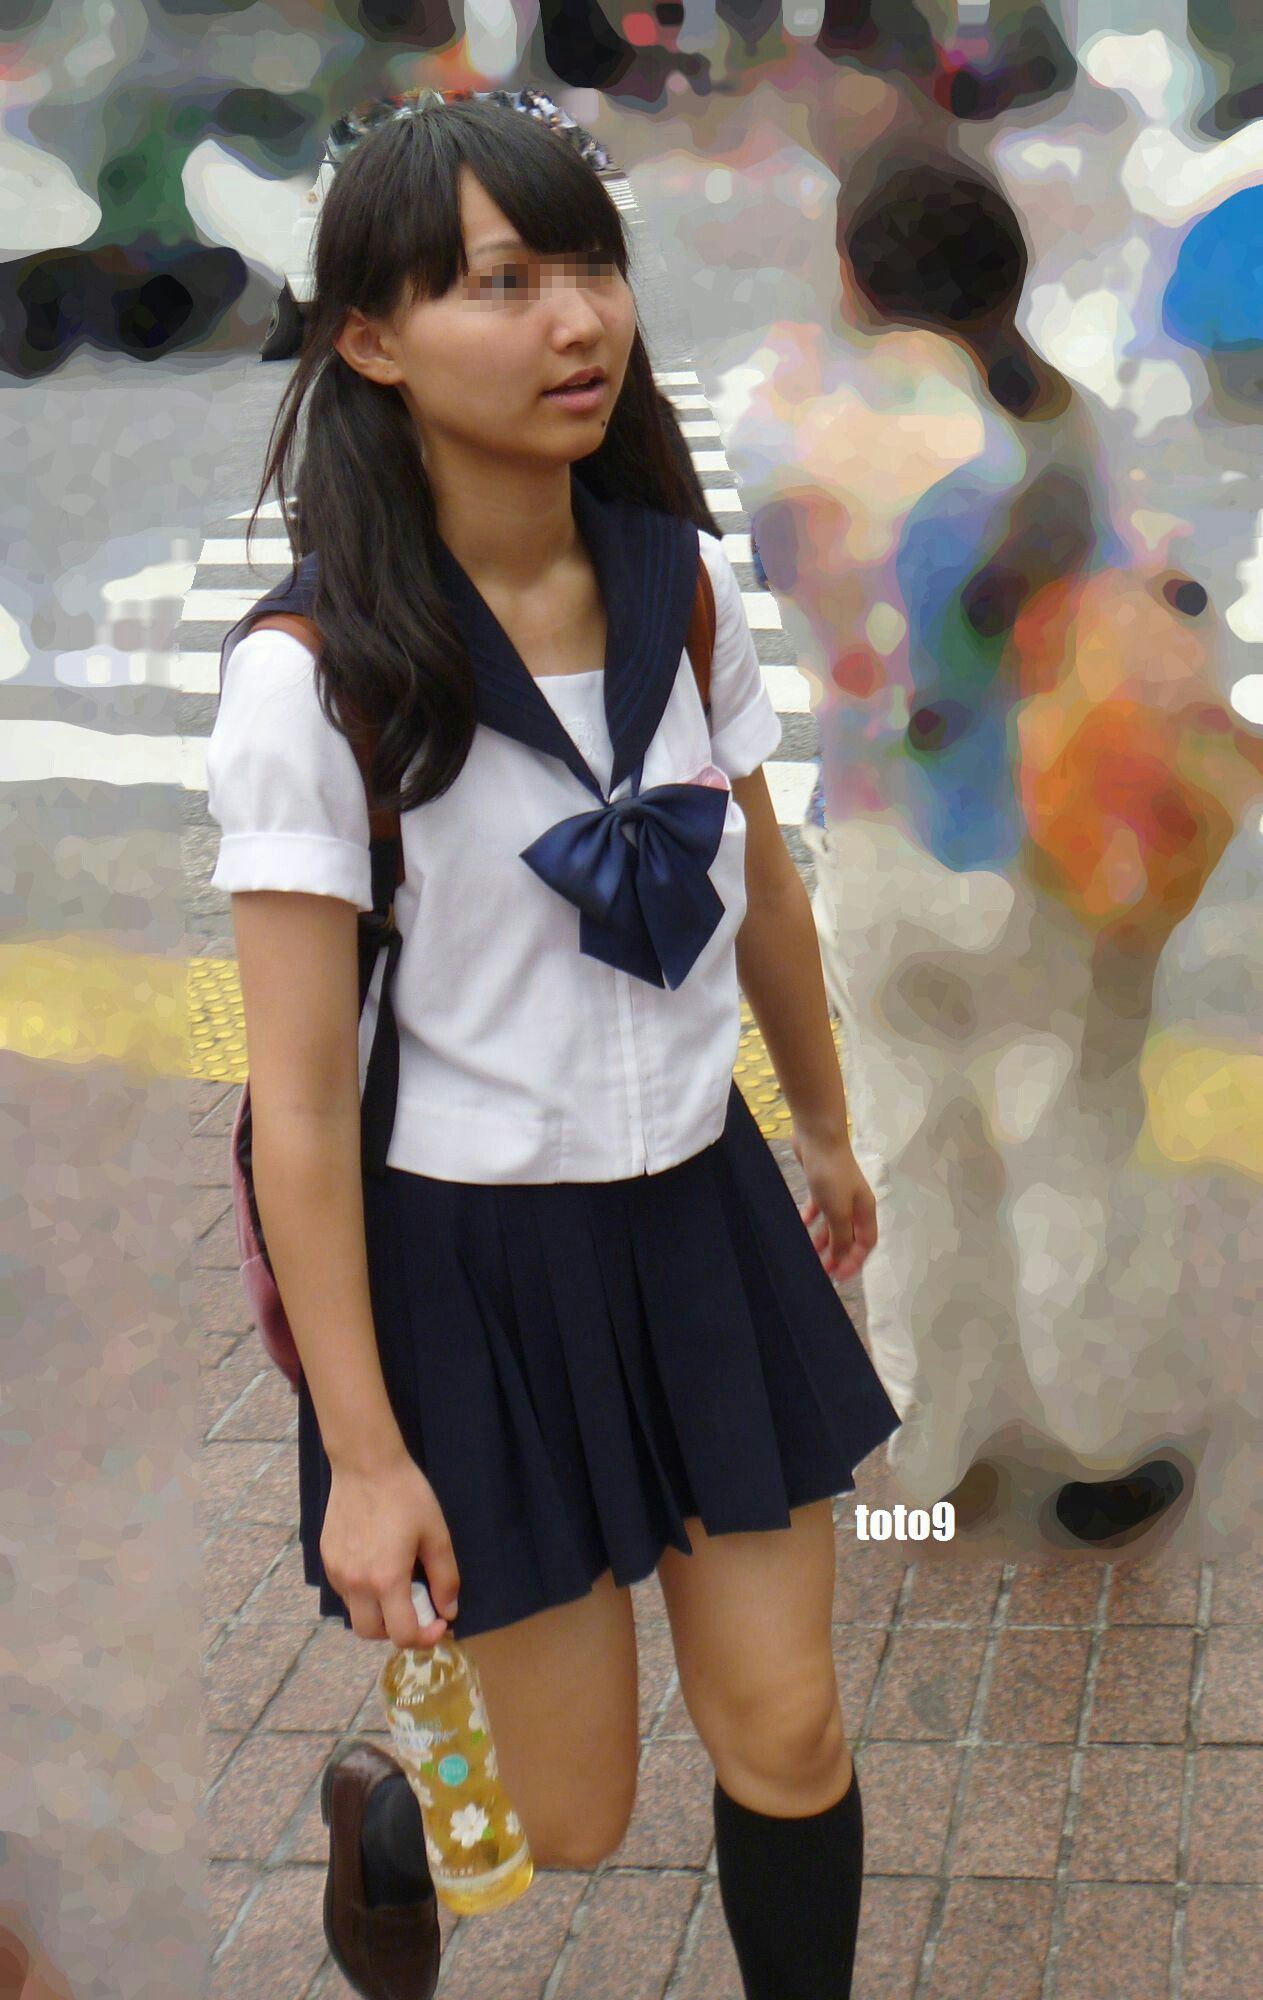 Asia middle school girls - Nude photos. Comments: 1